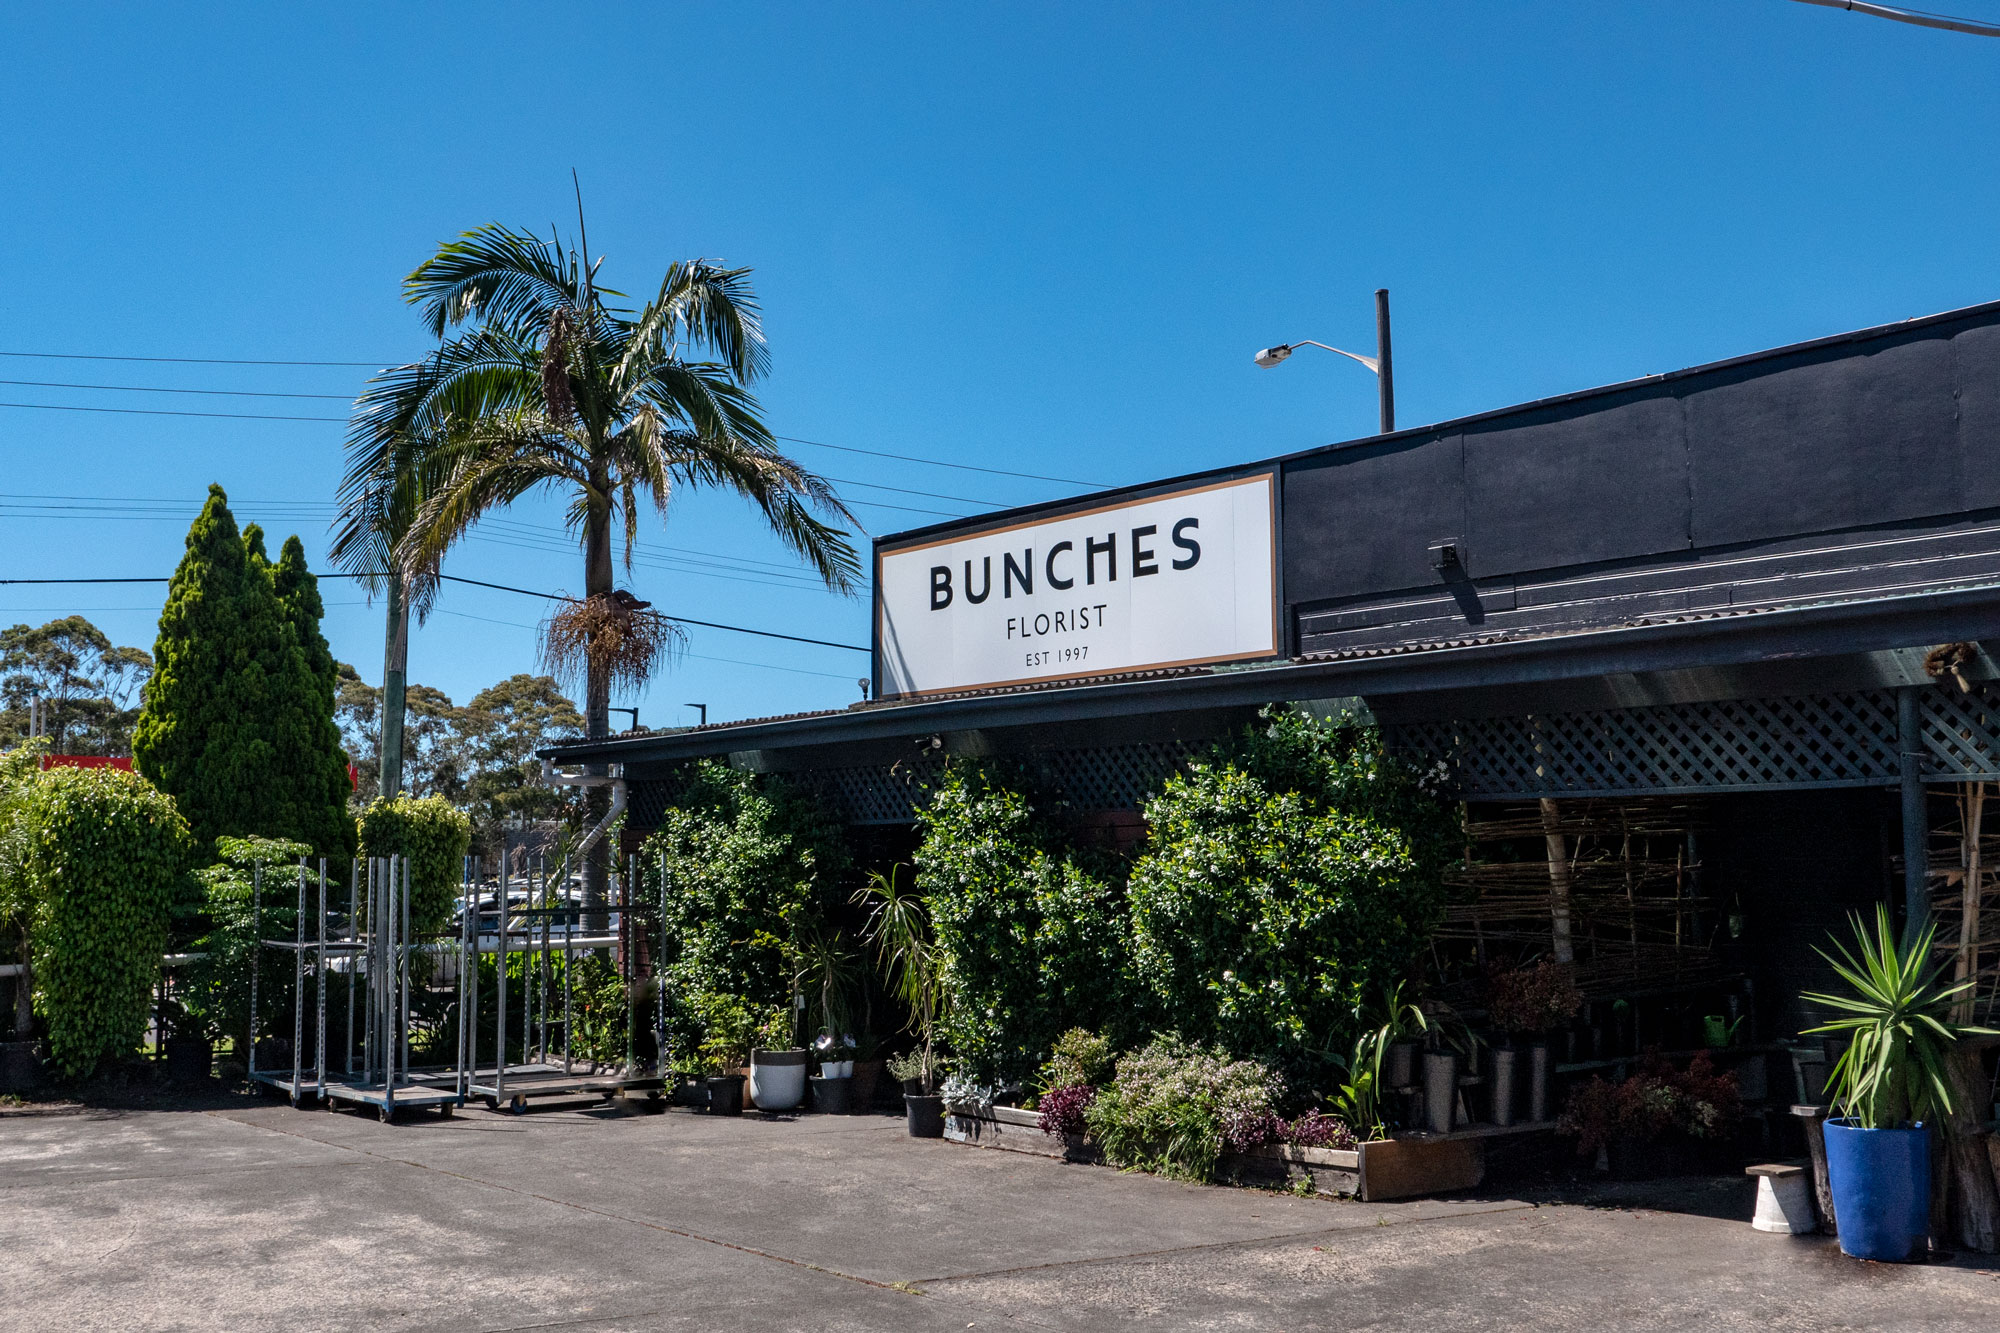 Bunch Florist - Business Sign